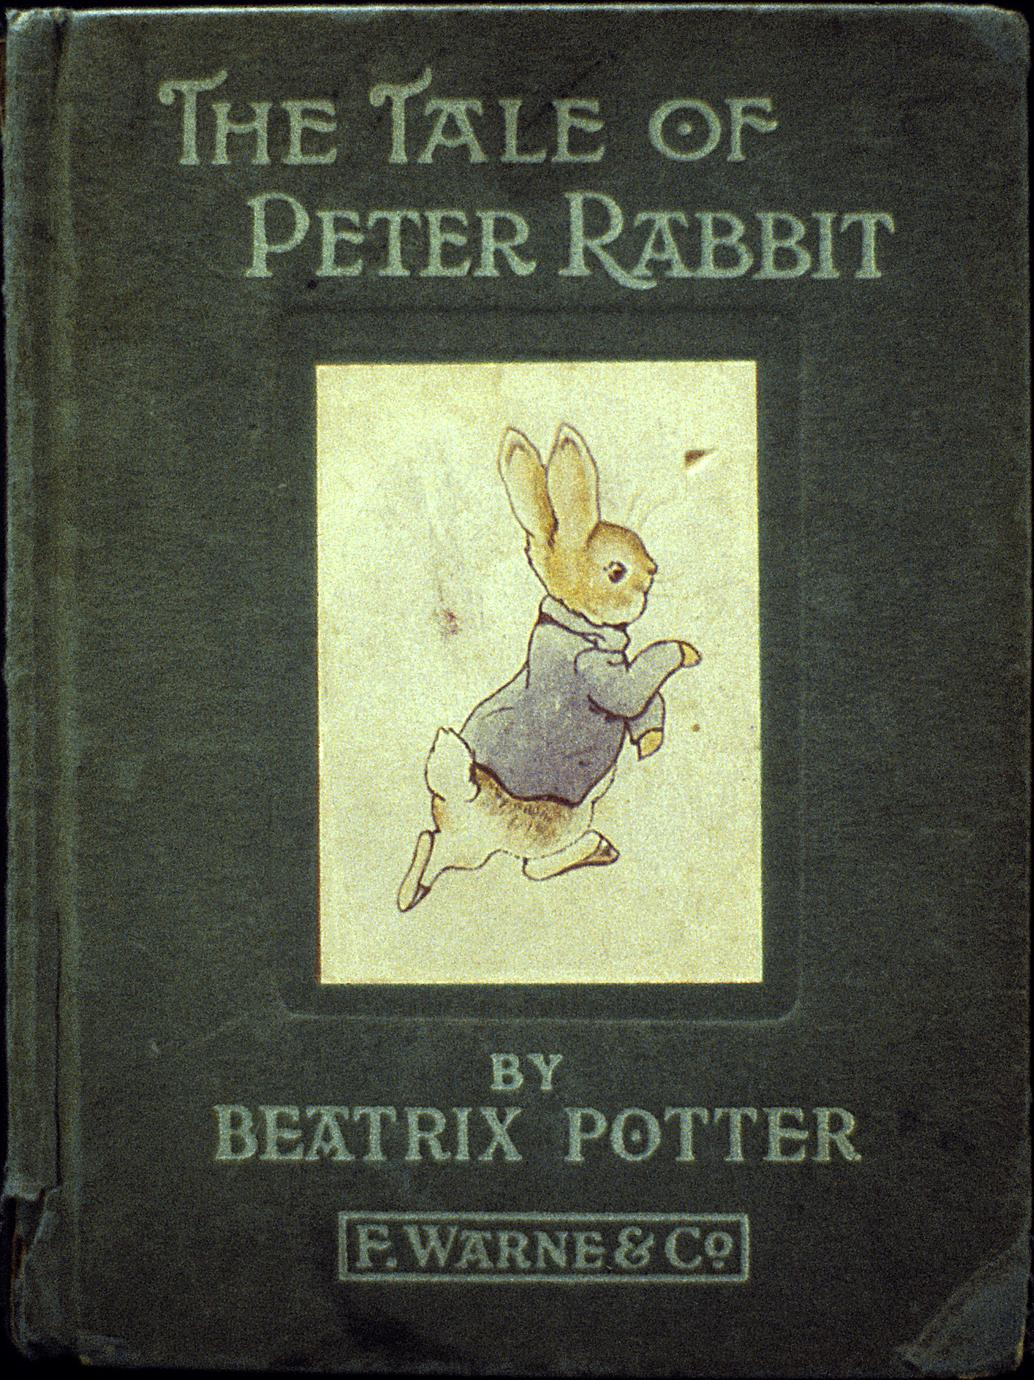 The tale of Peter Rabbit (1 of 2)